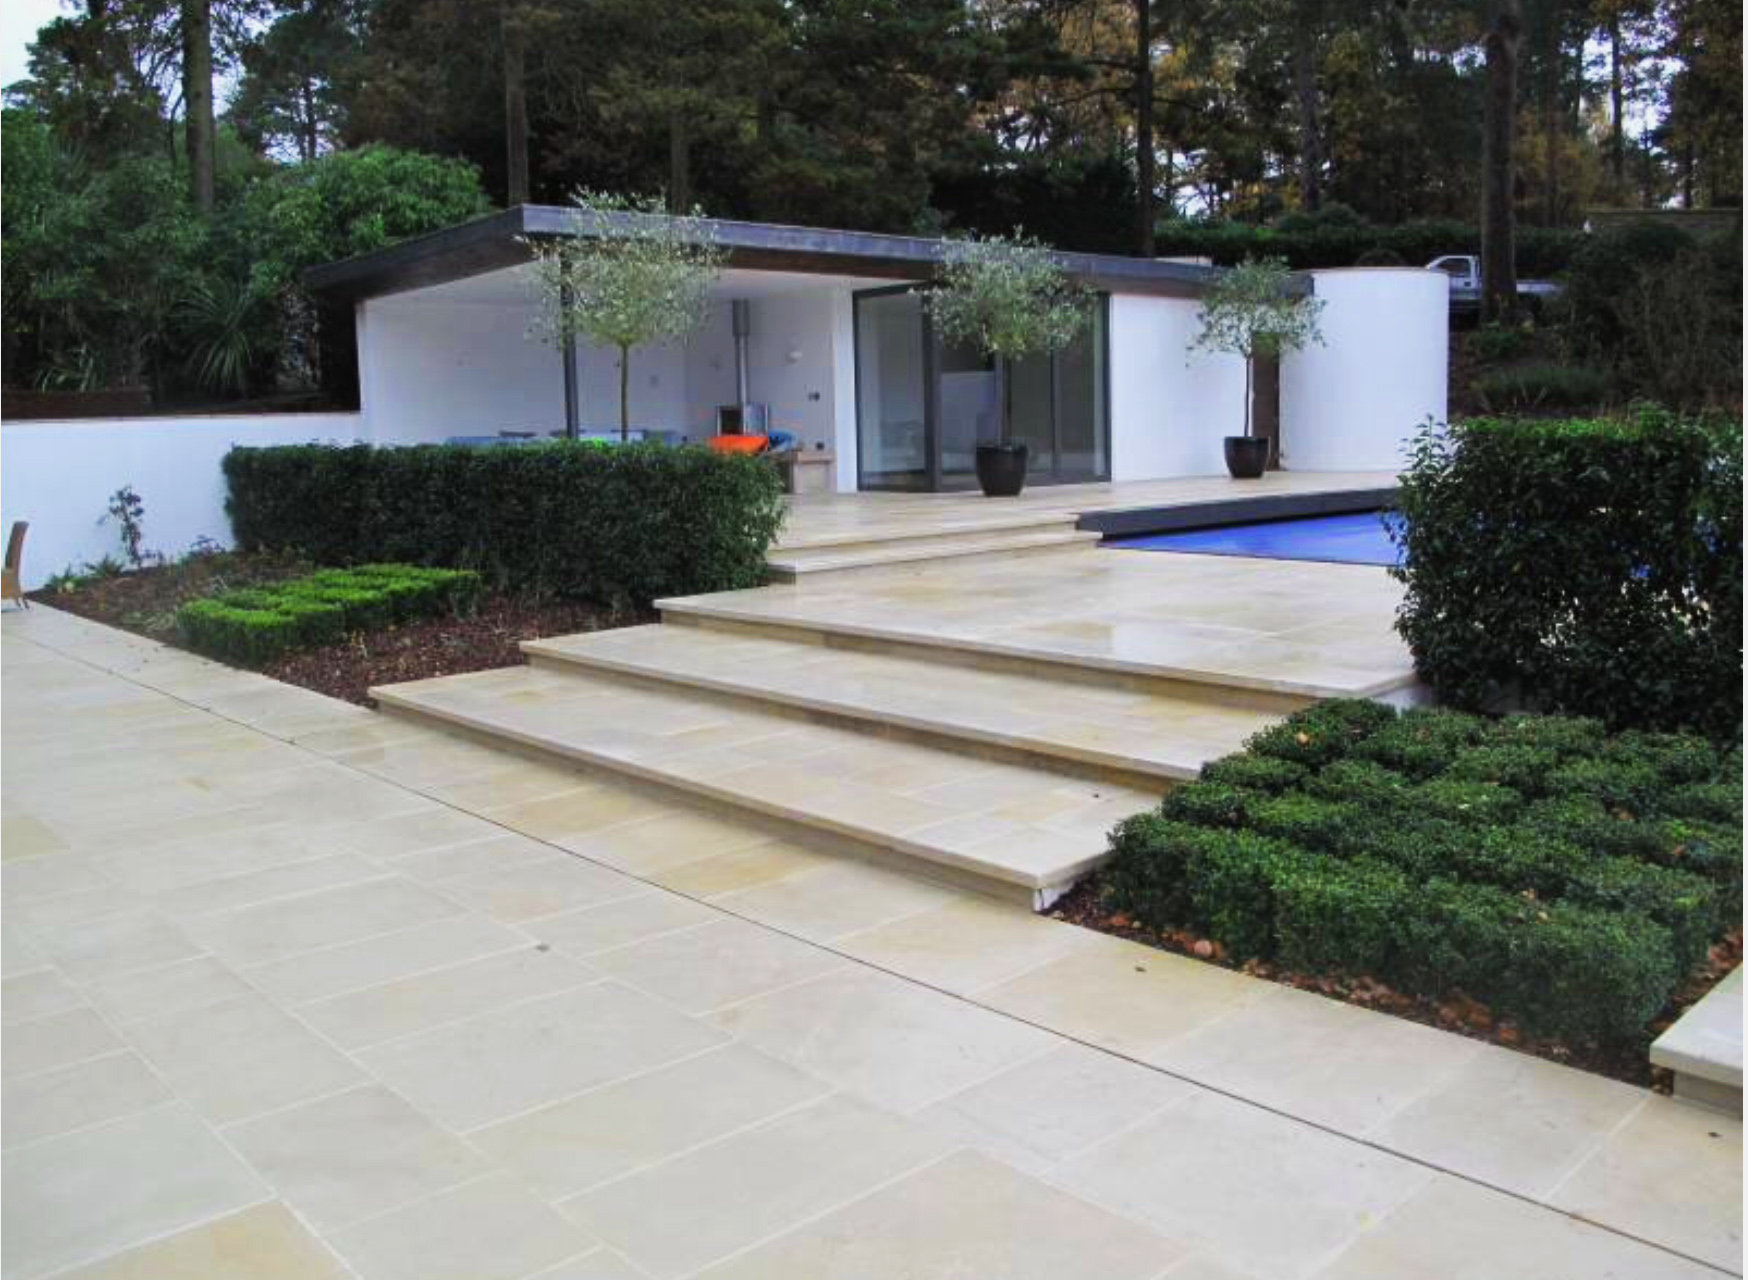 Landscaping design construction melbourne berwick glen for Landscape construction melbourne